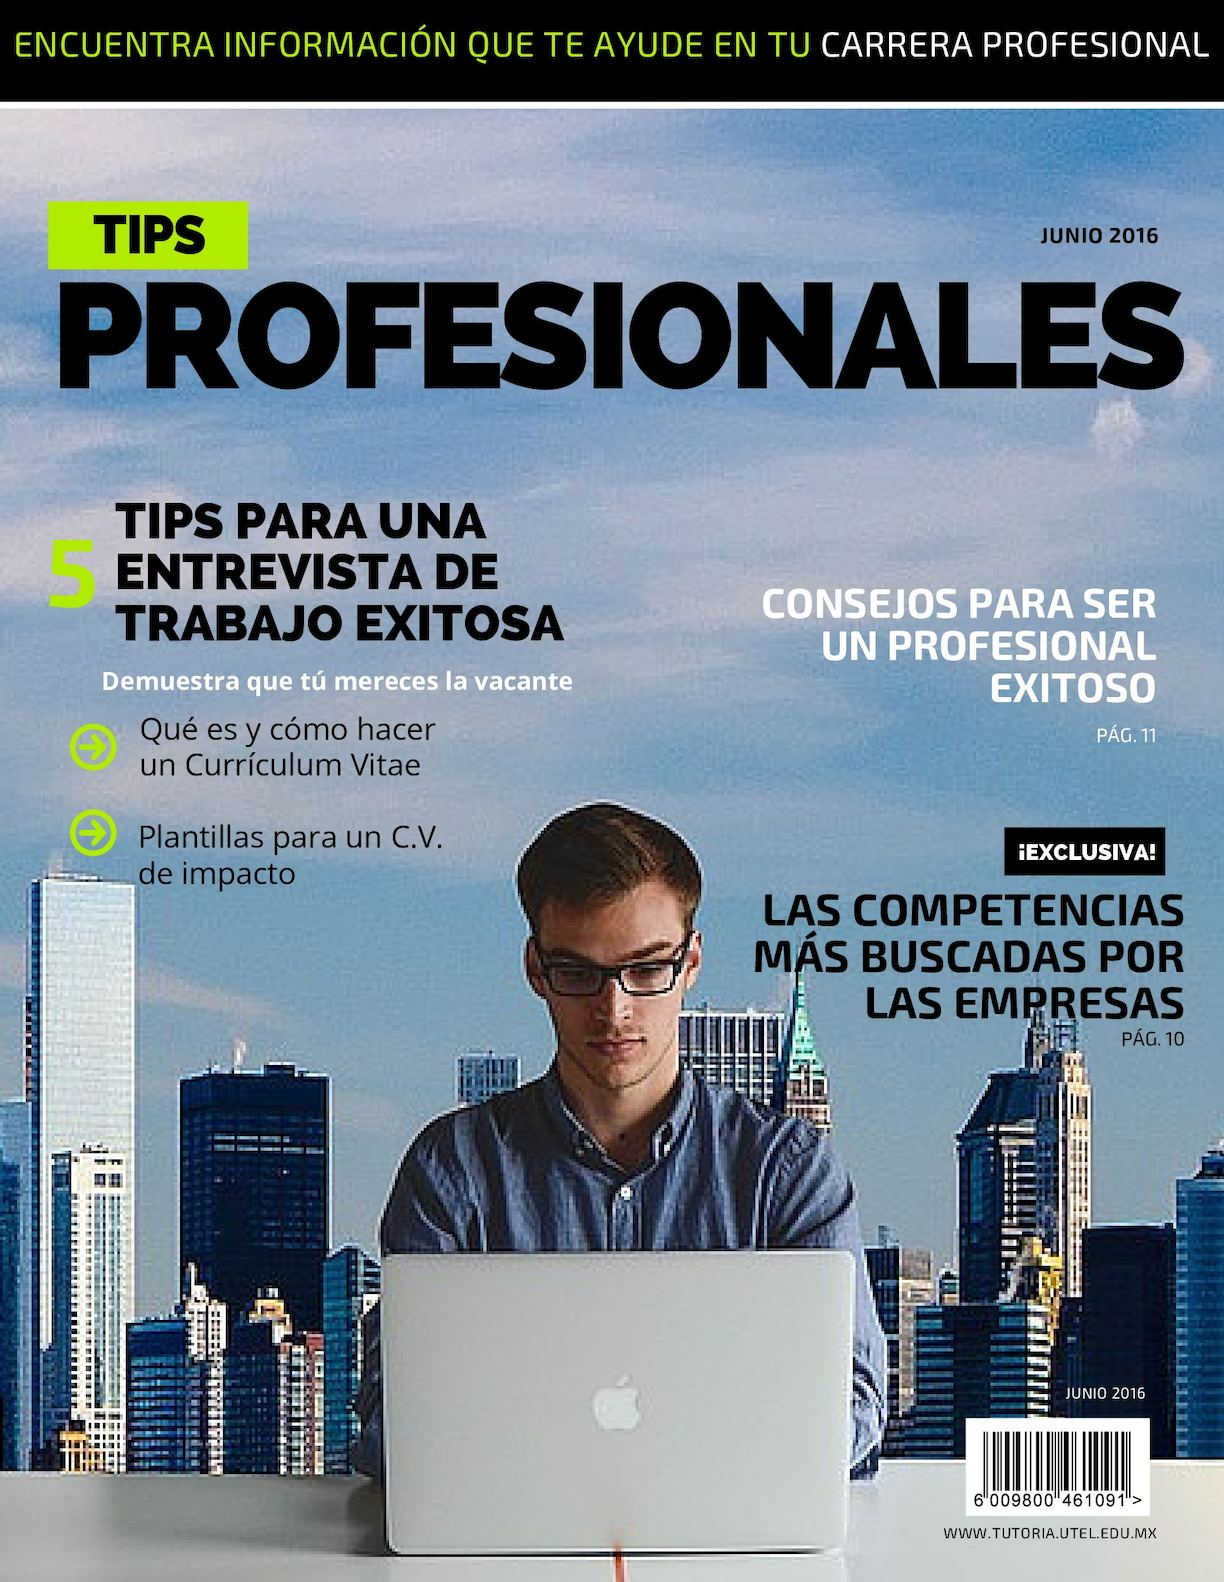 Tipsters profesionales egasParadise com-353726